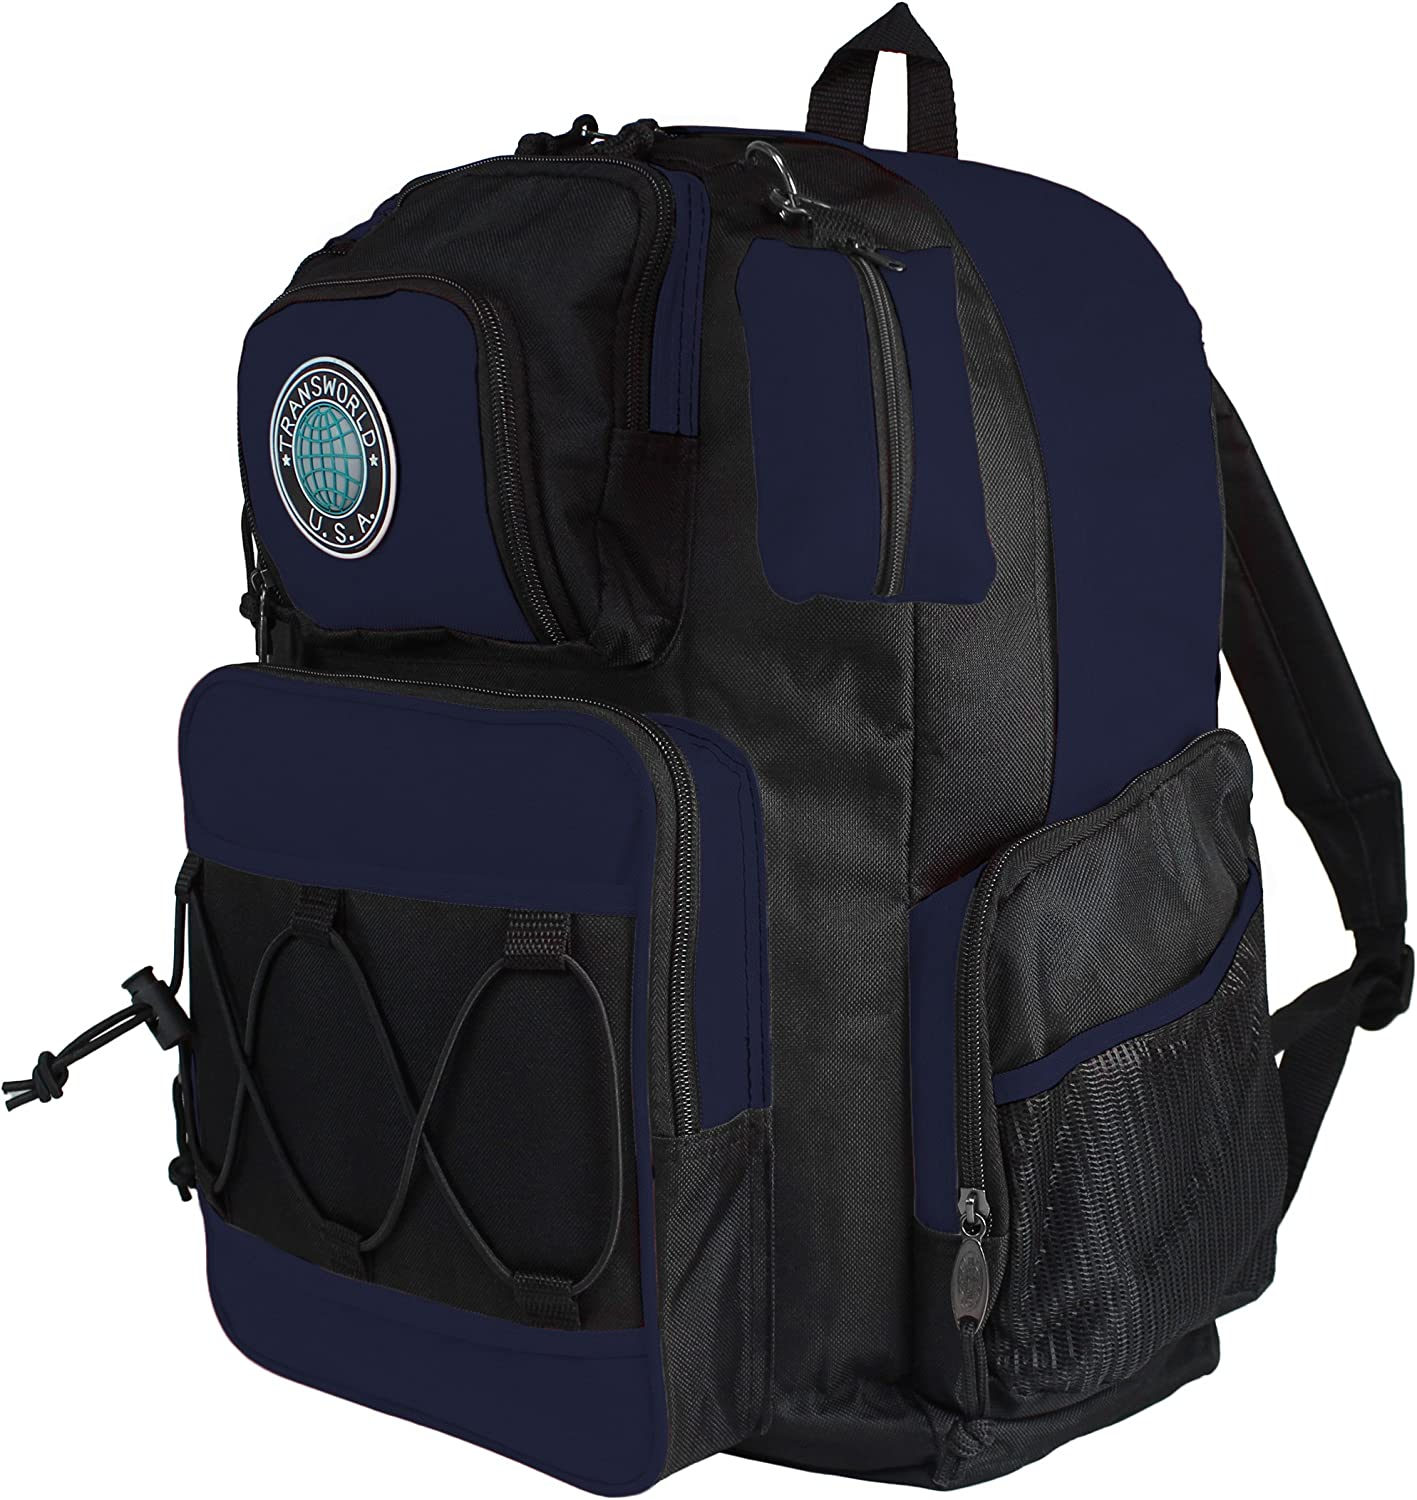 TRANSWORLD All Inclusive 16-inch Backpack